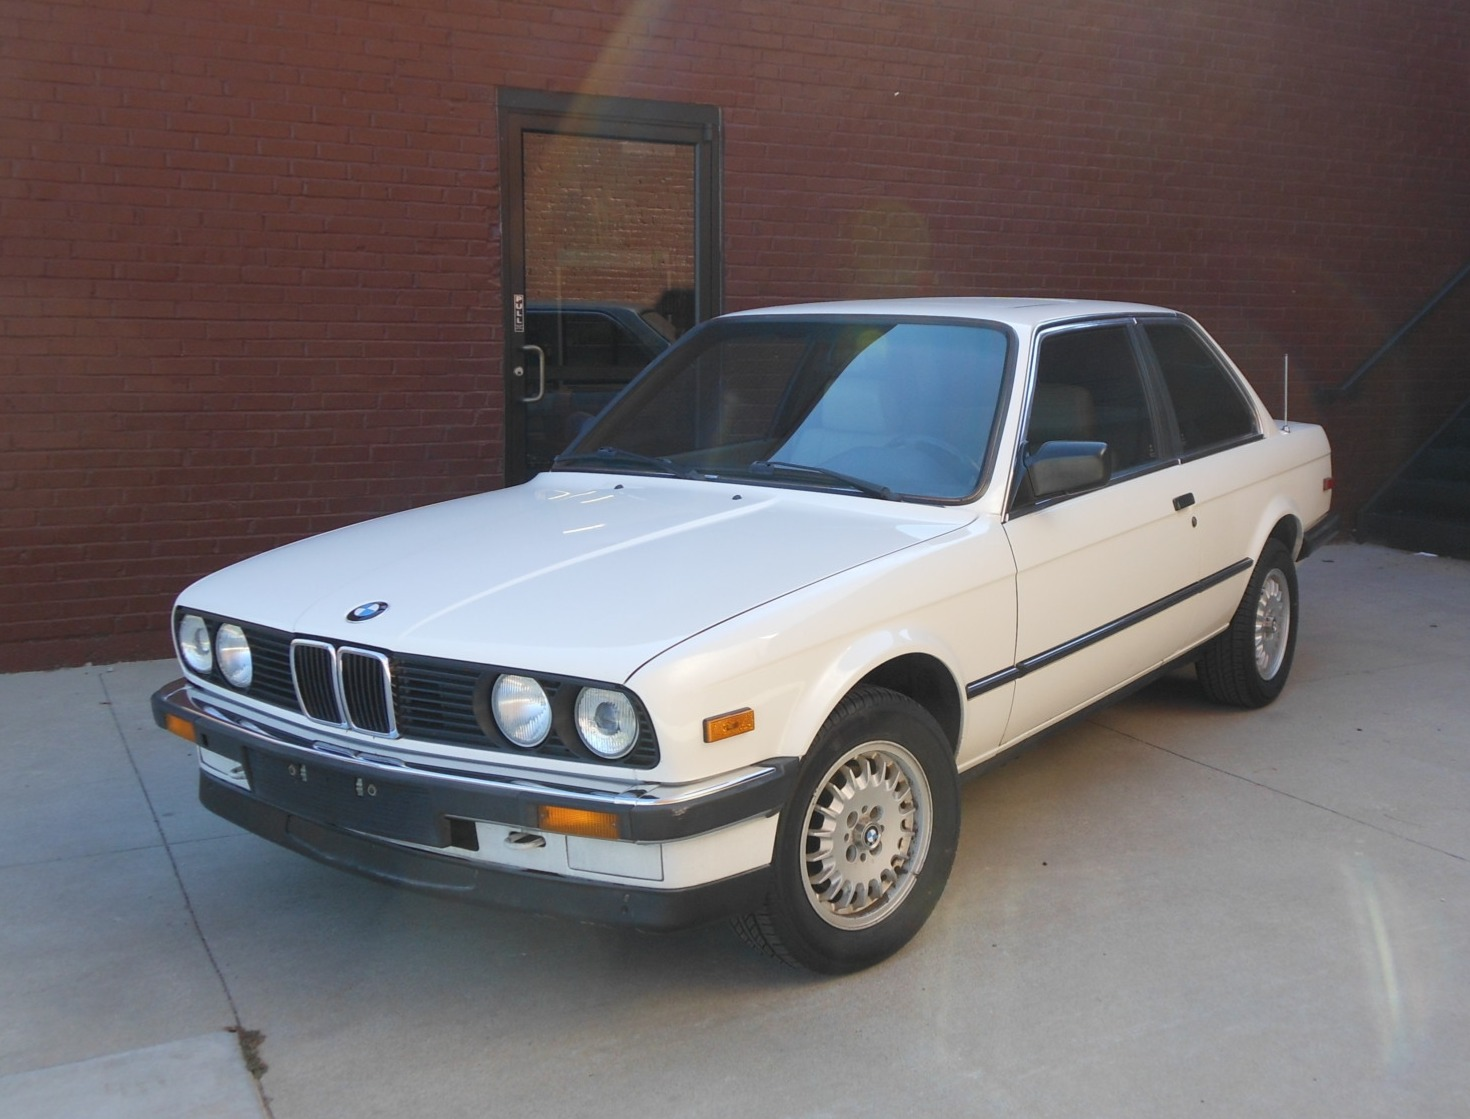 hight resolution of no reserve euro spec 1986 bmw 325e 5 speed for sale on bat auctions sold for 4 600 on november 16 2018 lot 14 120 bring a trailer